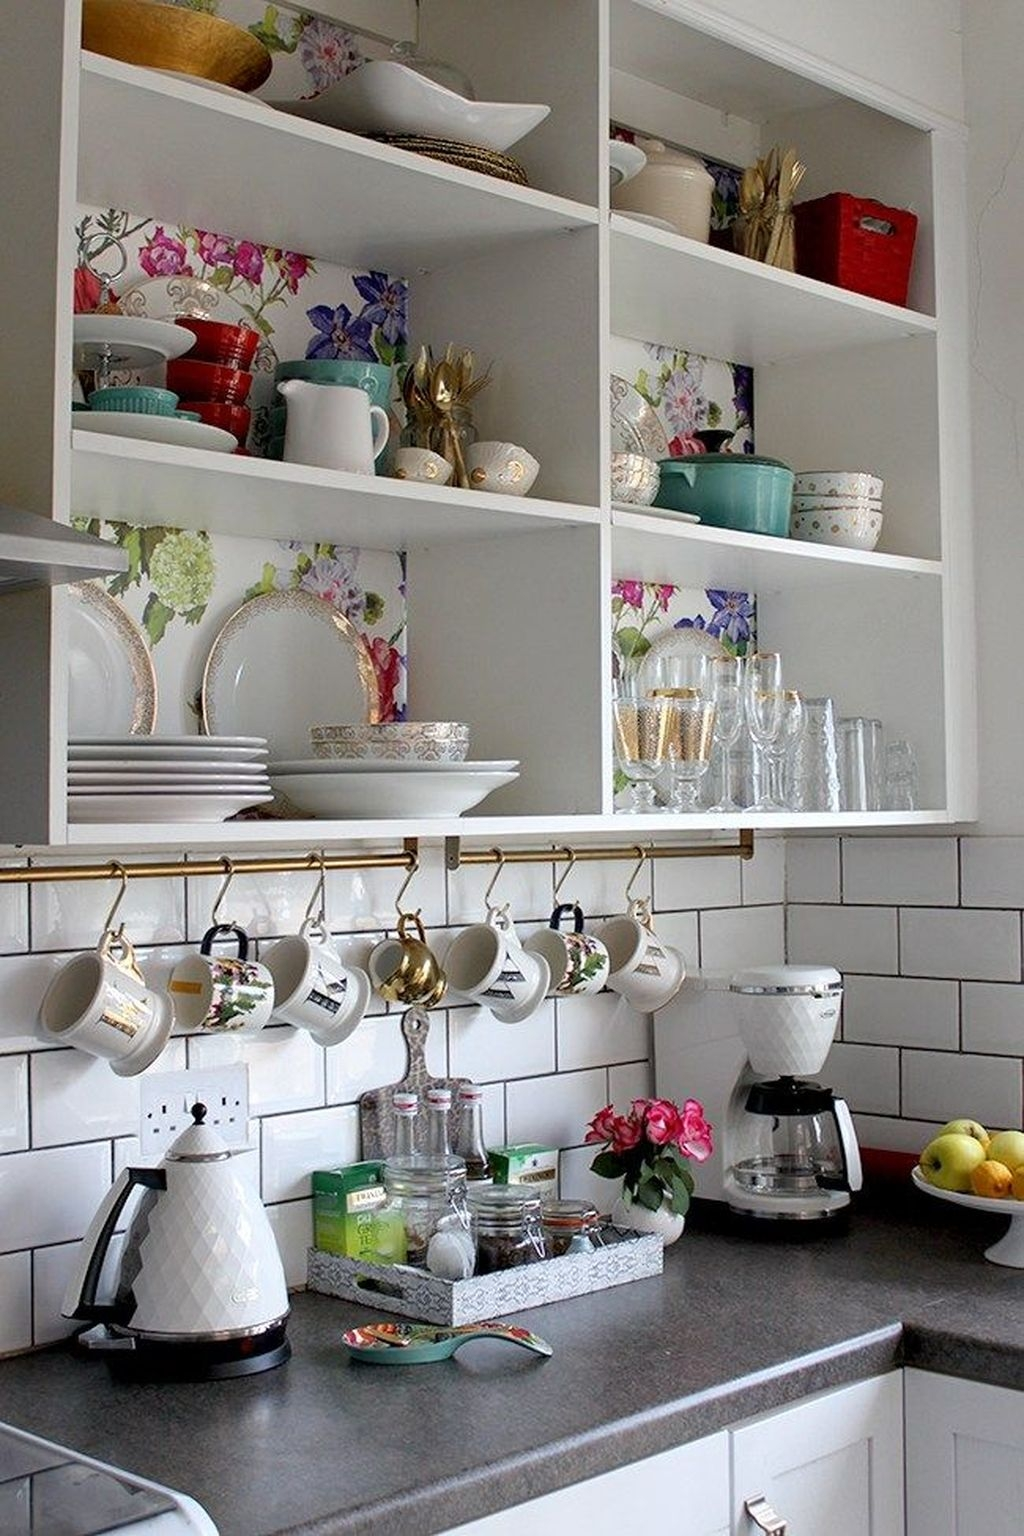 Best Kitchen Decorating Ideas That You Can Easily Try In Your Home03